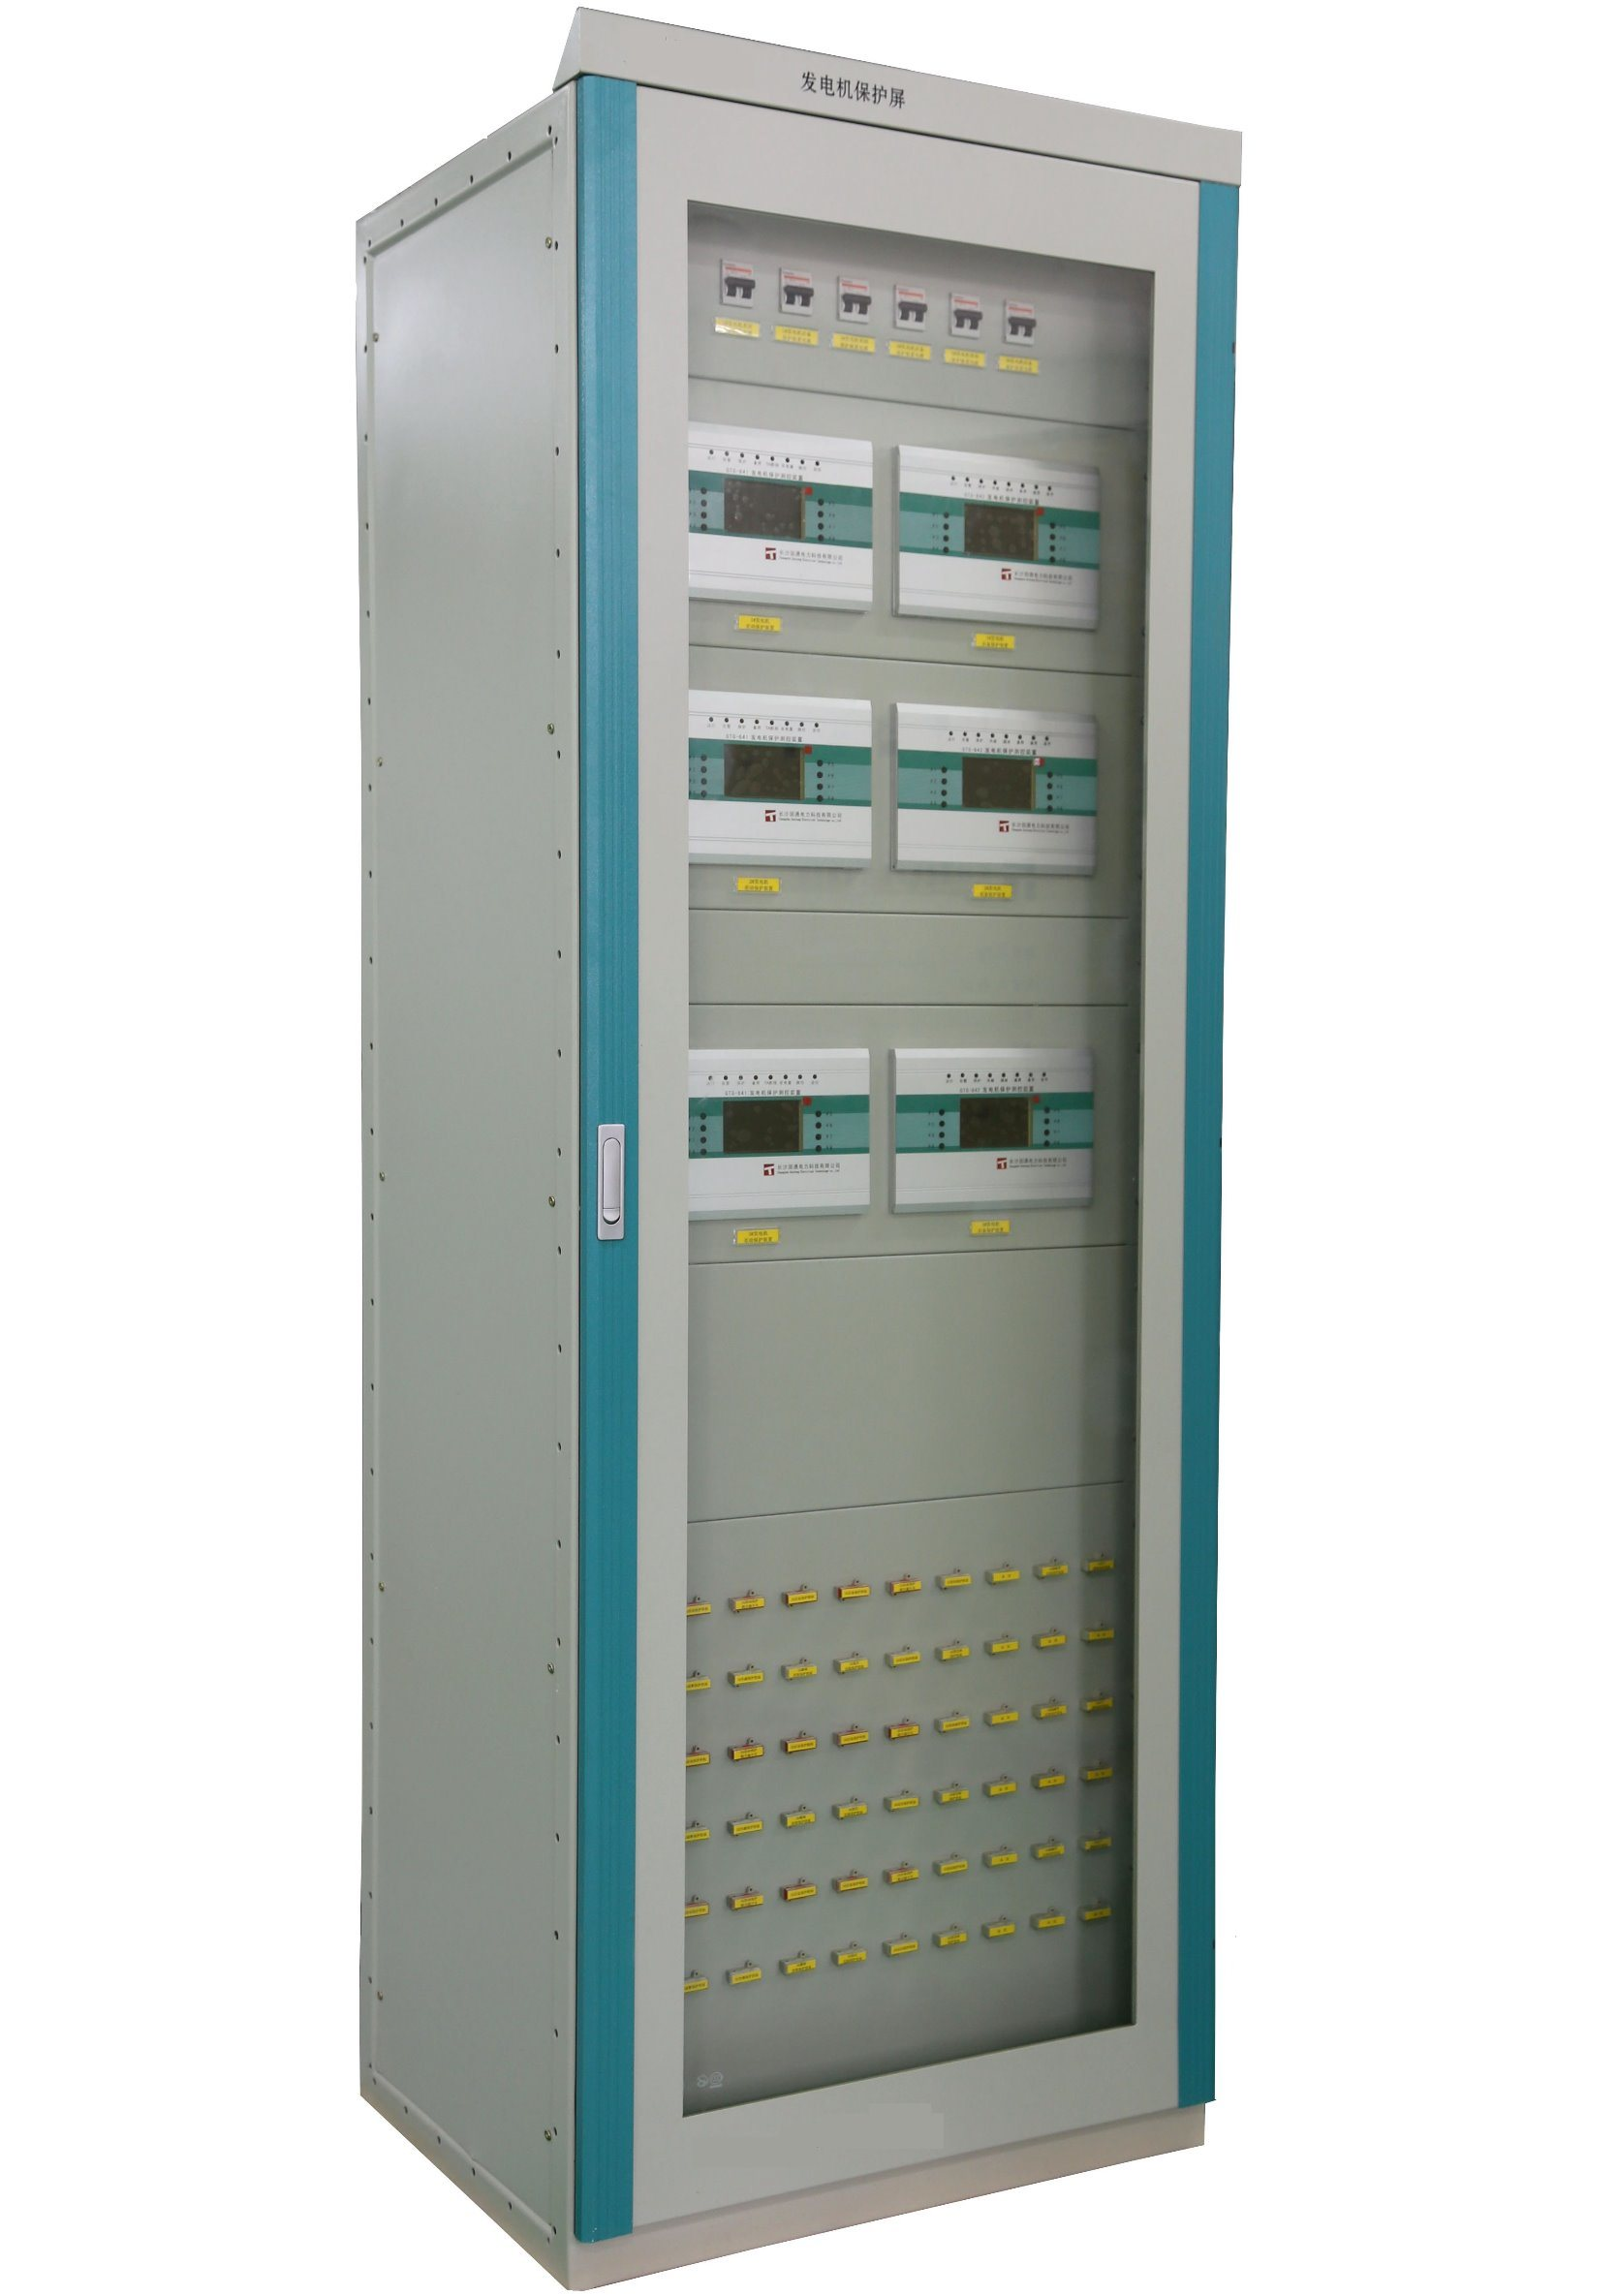 China Protection And Control Metering Pcm Panel Of Different Digital Stopwatch 060sec Circuit Protion For Power Transformer Up To 230kv Distribution